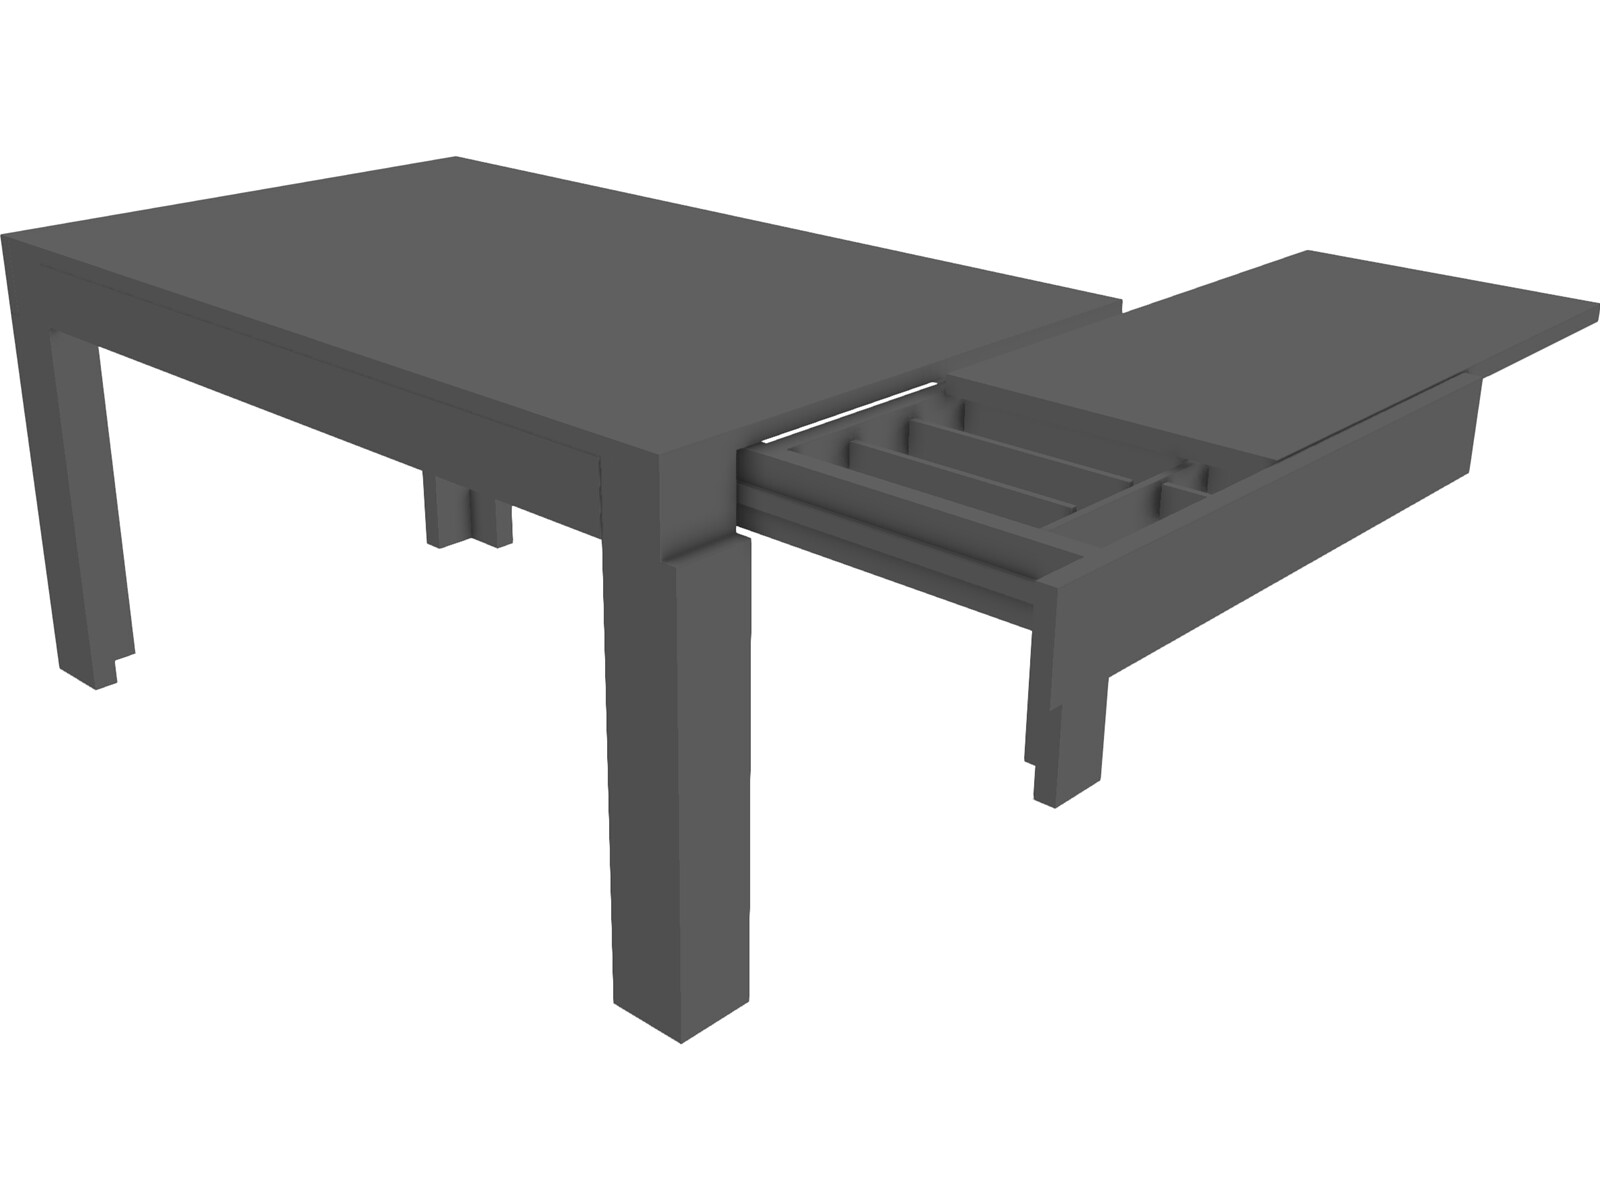 Table 3D CAD ModelFree